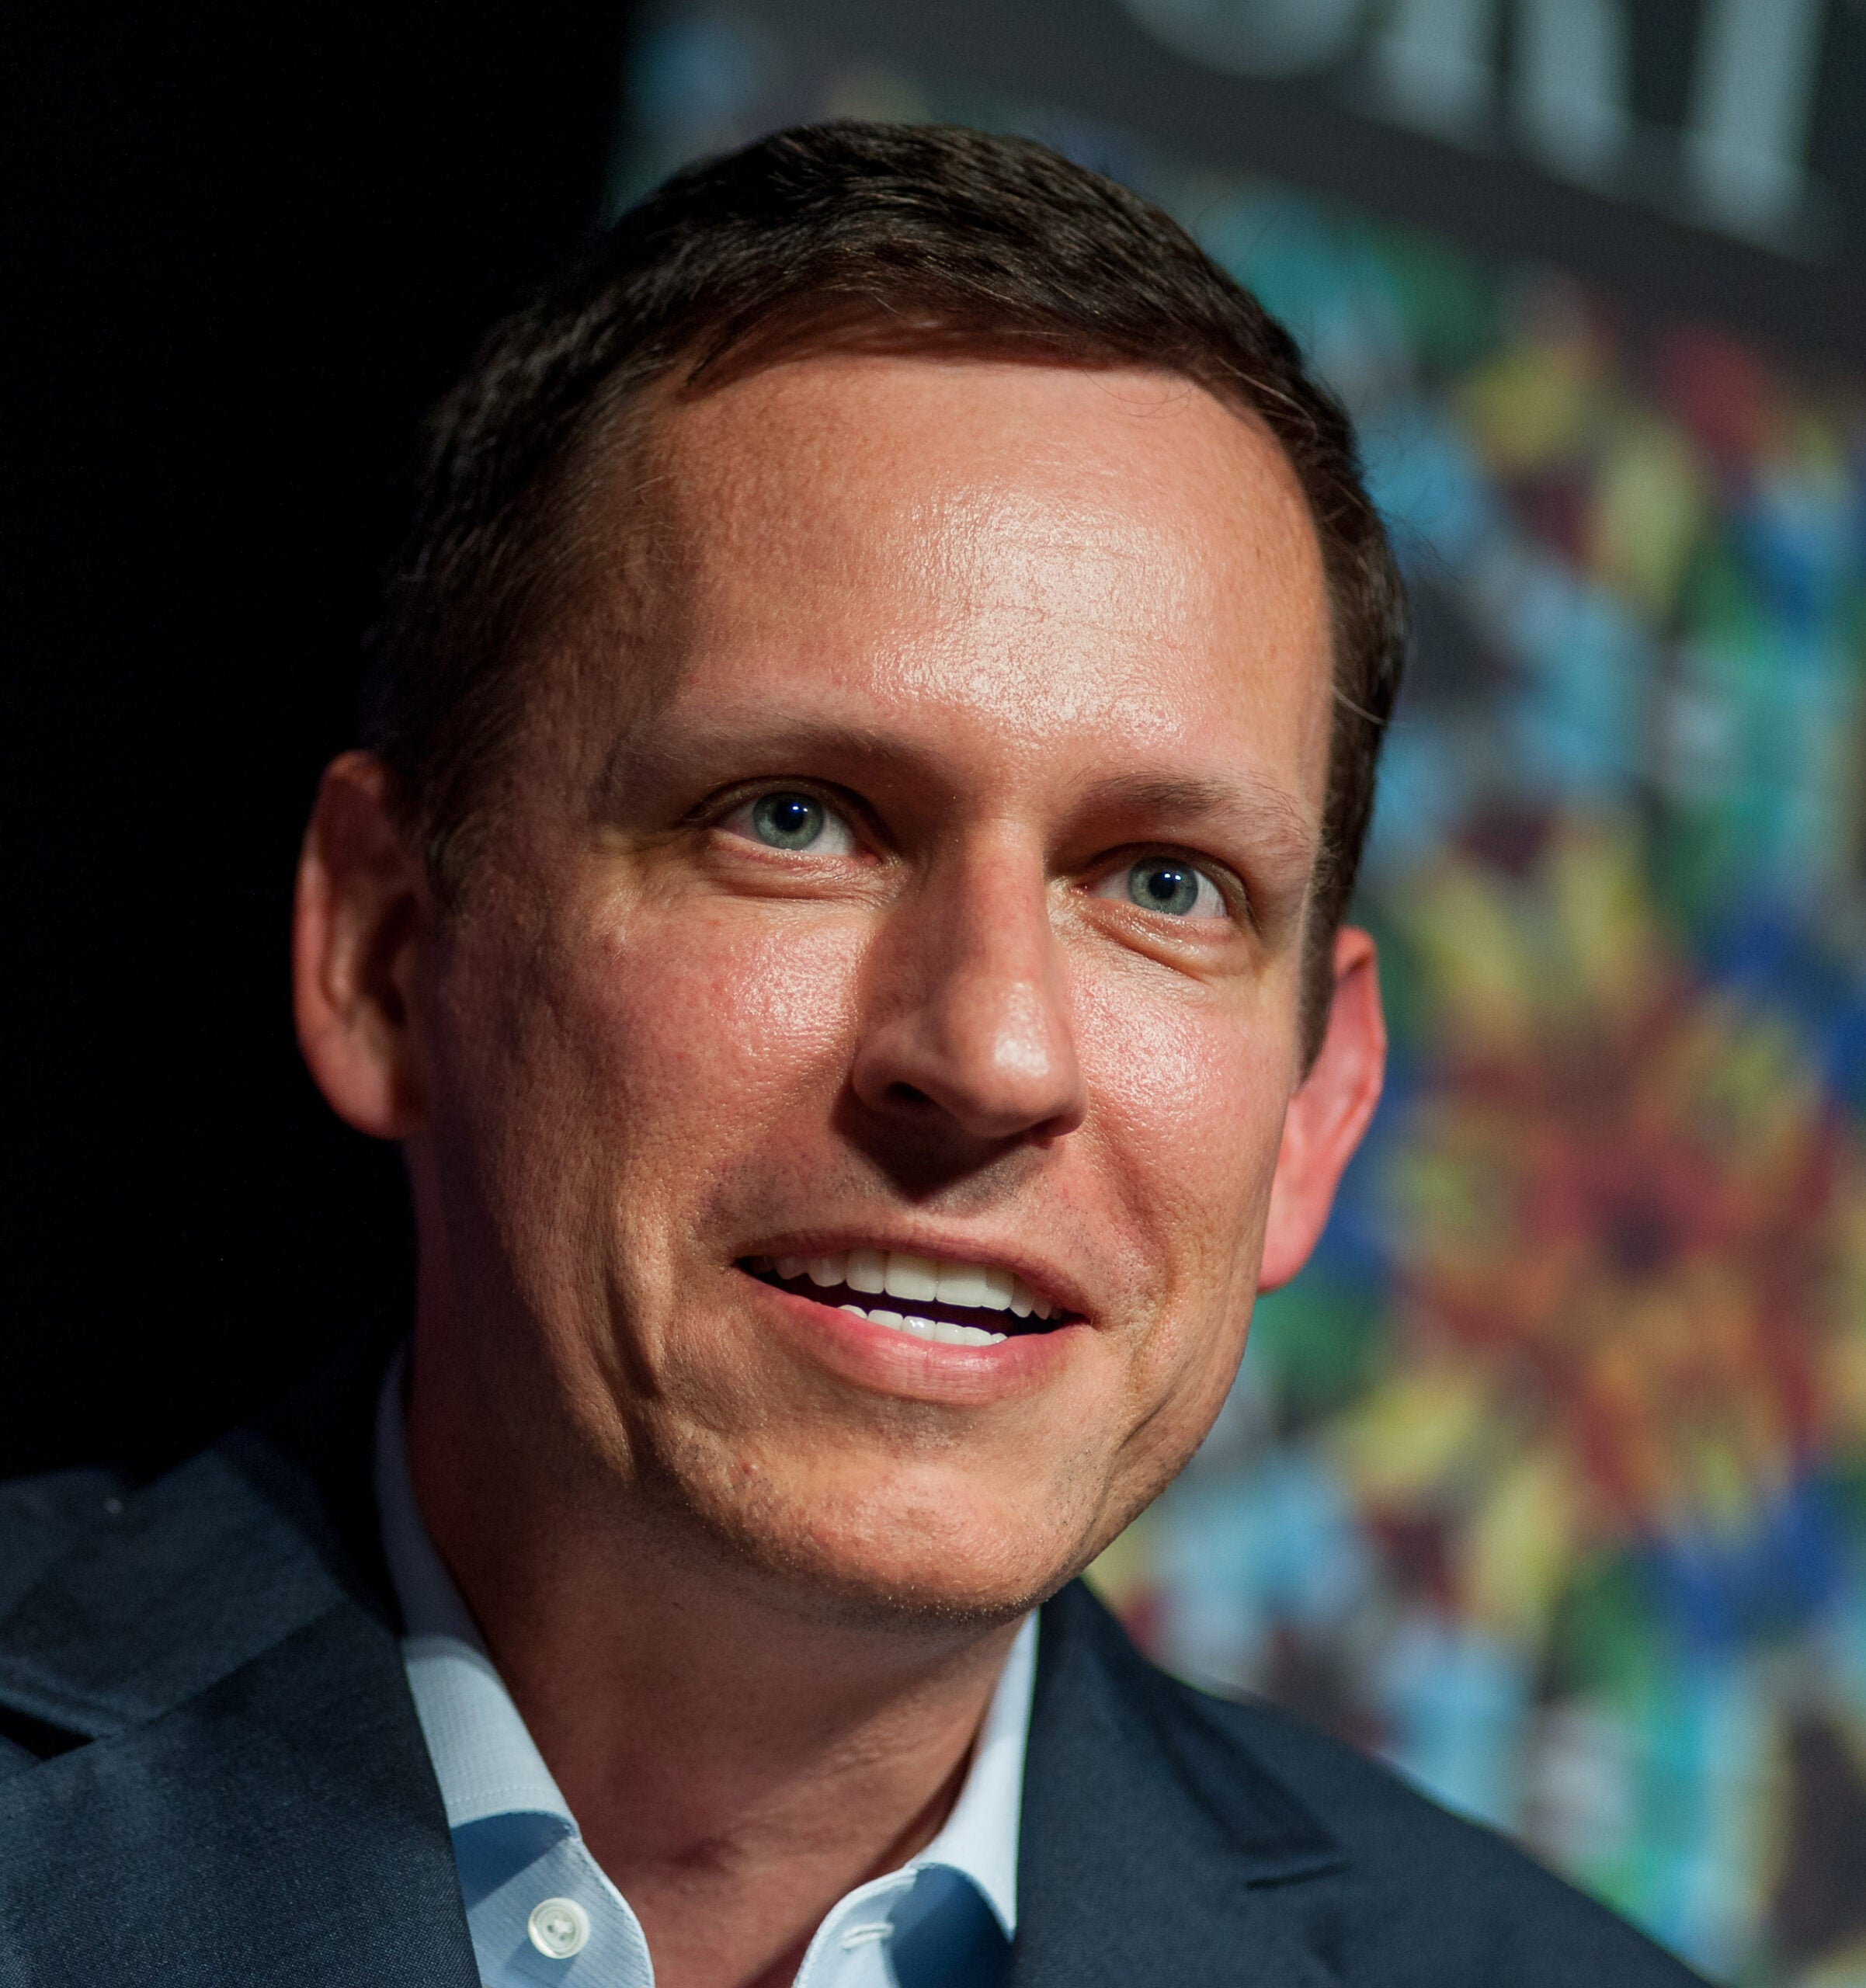 Trump Might Nominate Peter Thiel for Supreme Court…Maybe